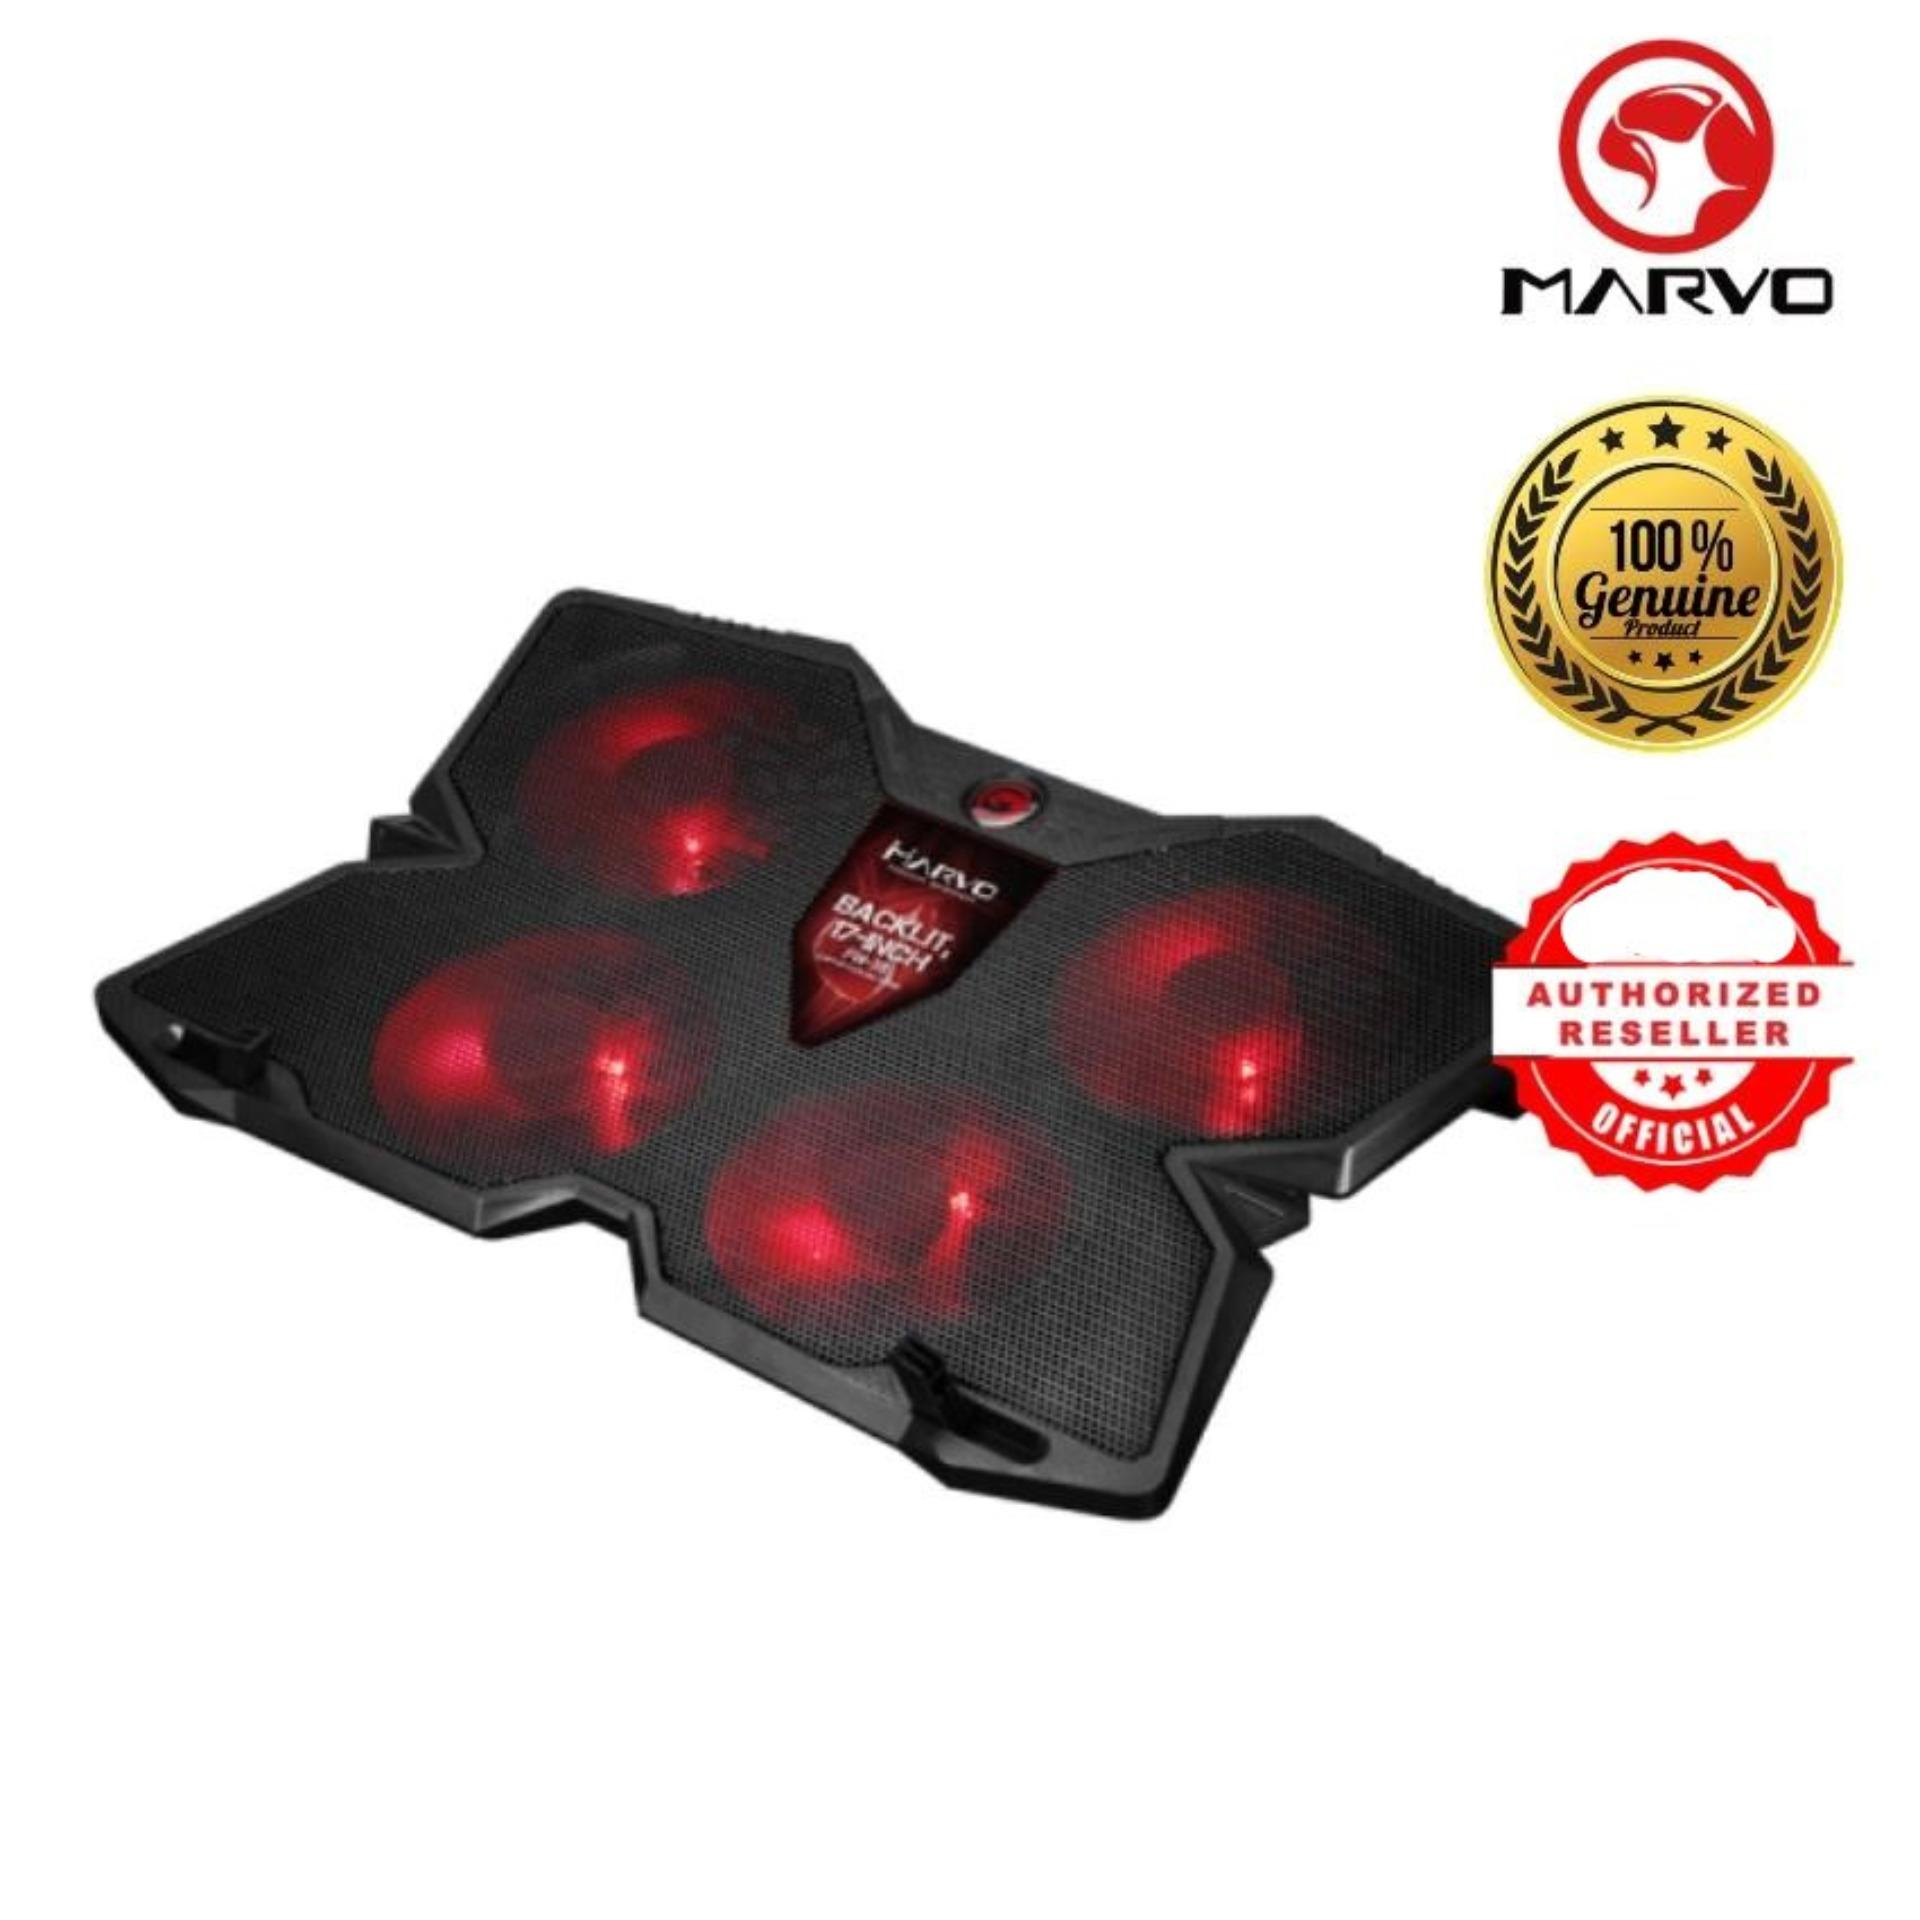 https://www.lazada.co.id/products/marvo-fn-38-laptop-powerful-gaming-cooling-pad-i101304131-s846692645.html